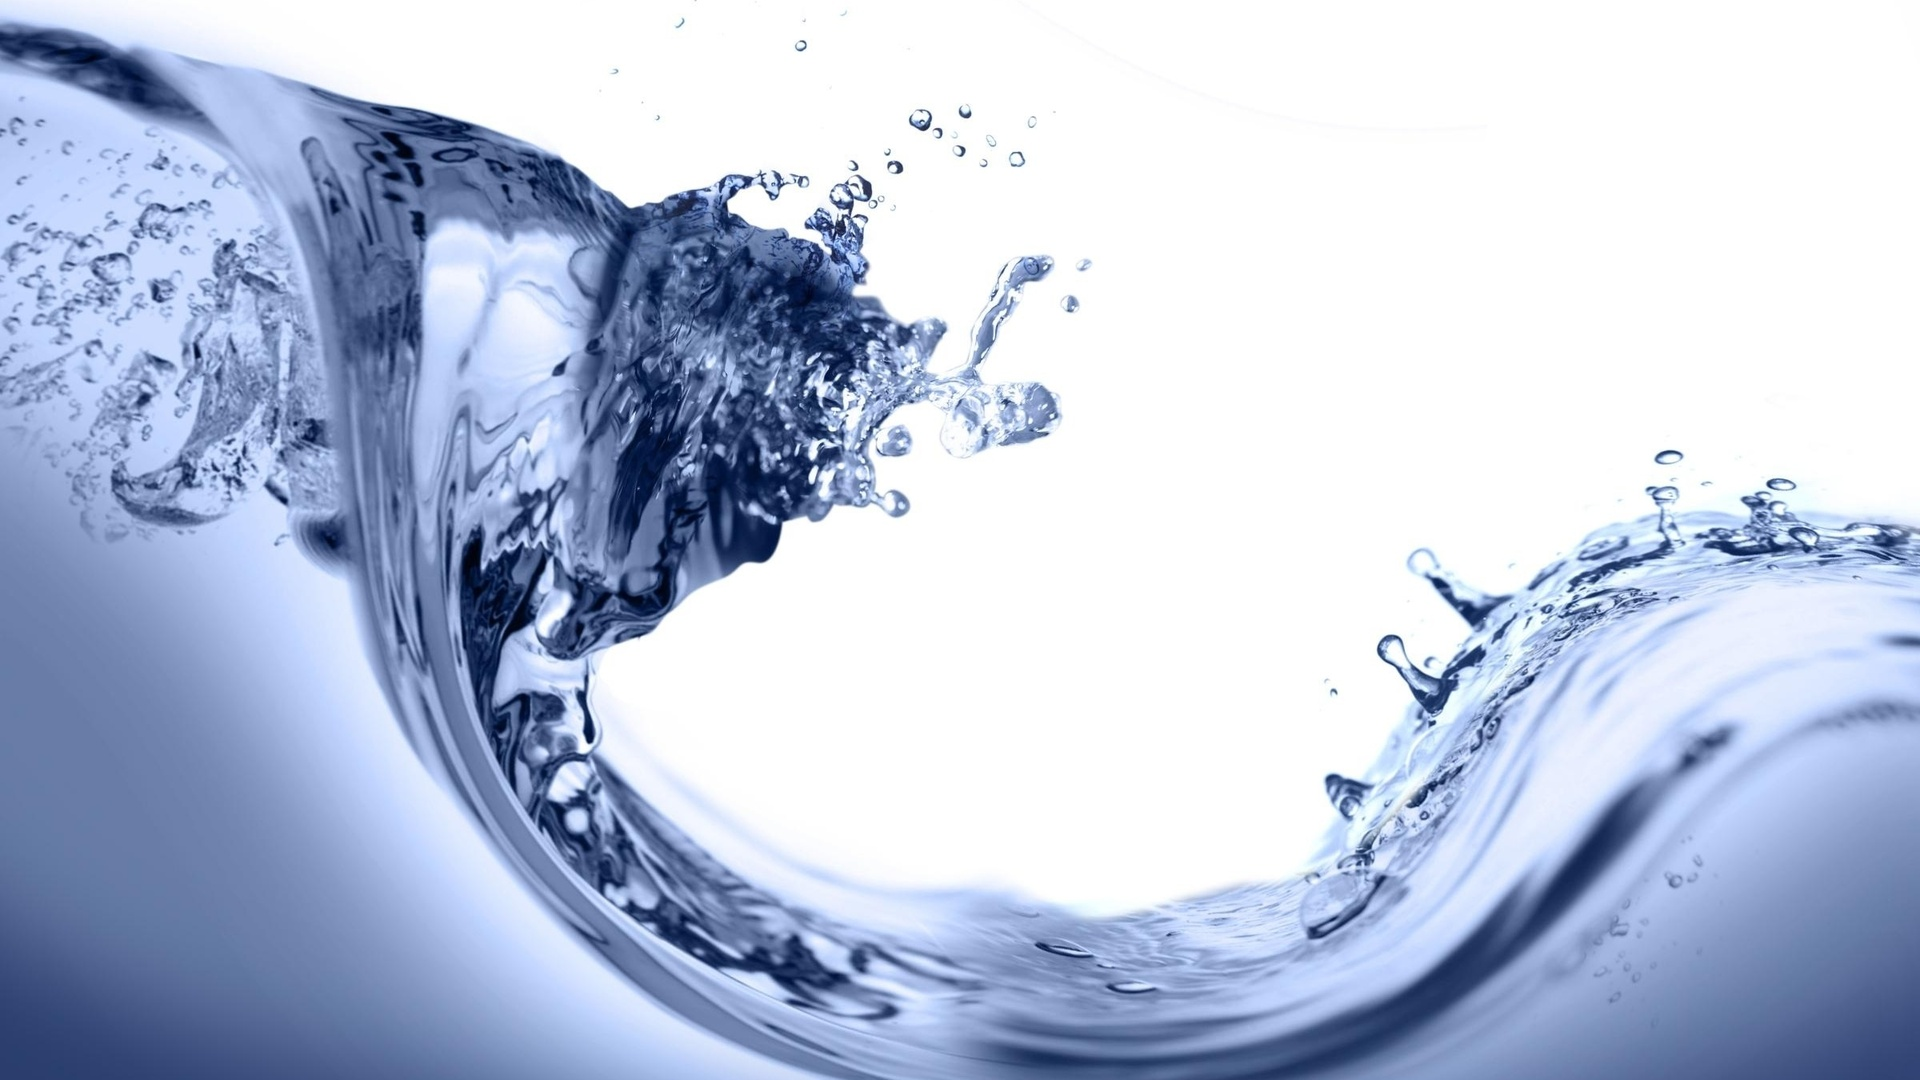 Water Splash Wallpaper ...